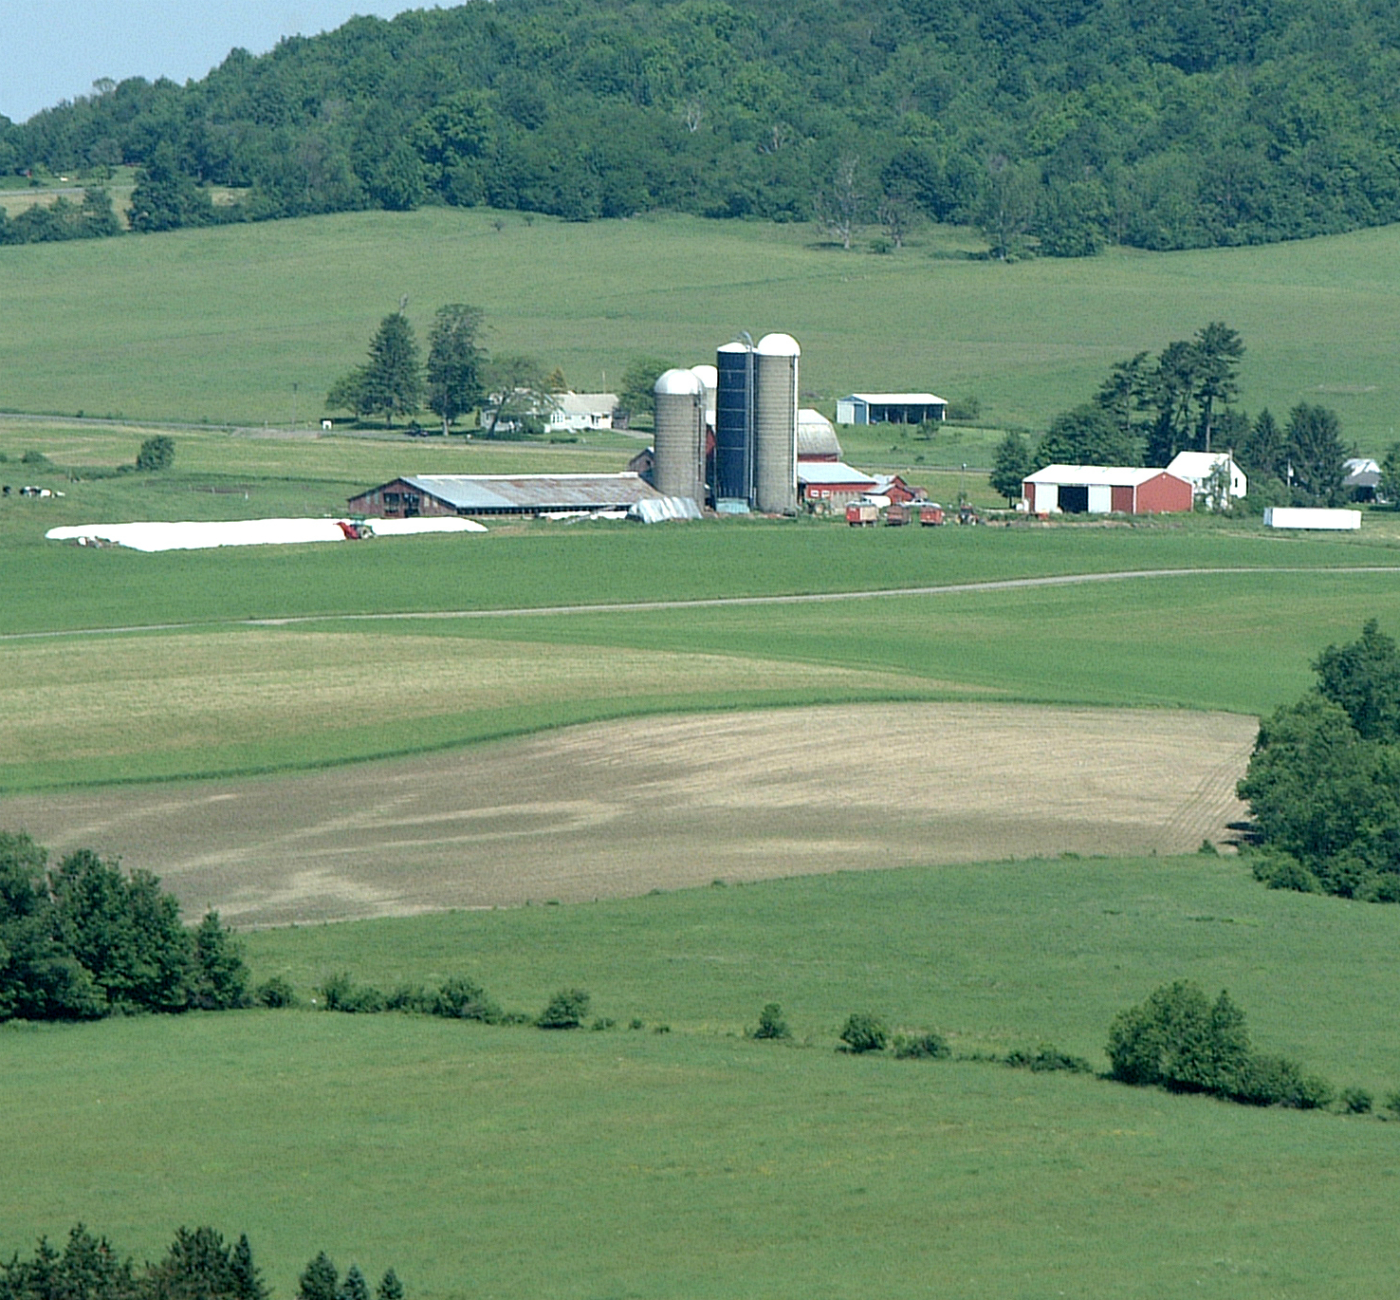 FarmScene002.jpg